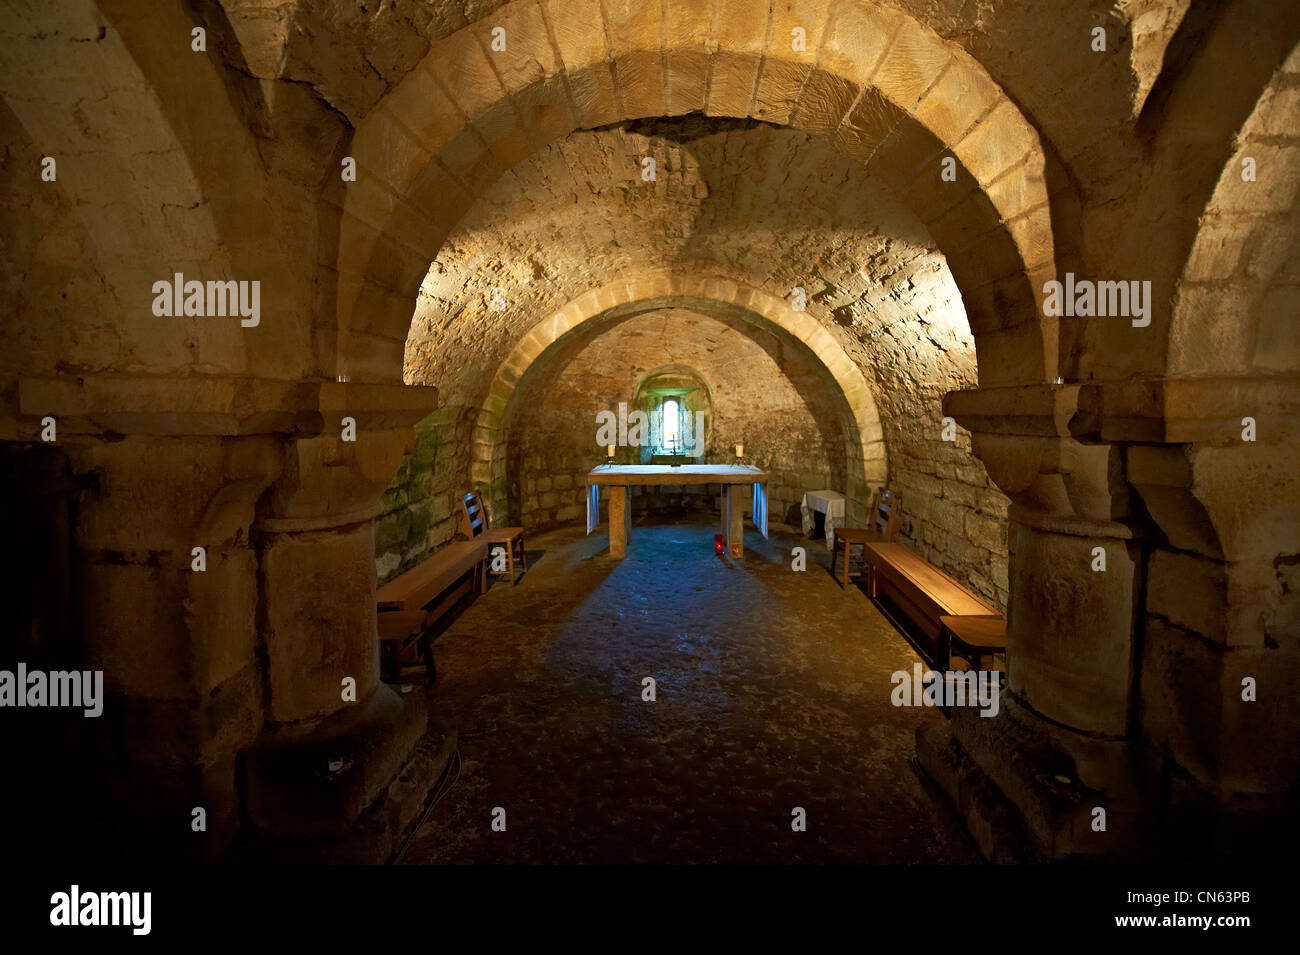 The naive & two isles of the 12th century Norman crypt of Lstingham Church. North Yorkshire Moors National Park. - Stock Image